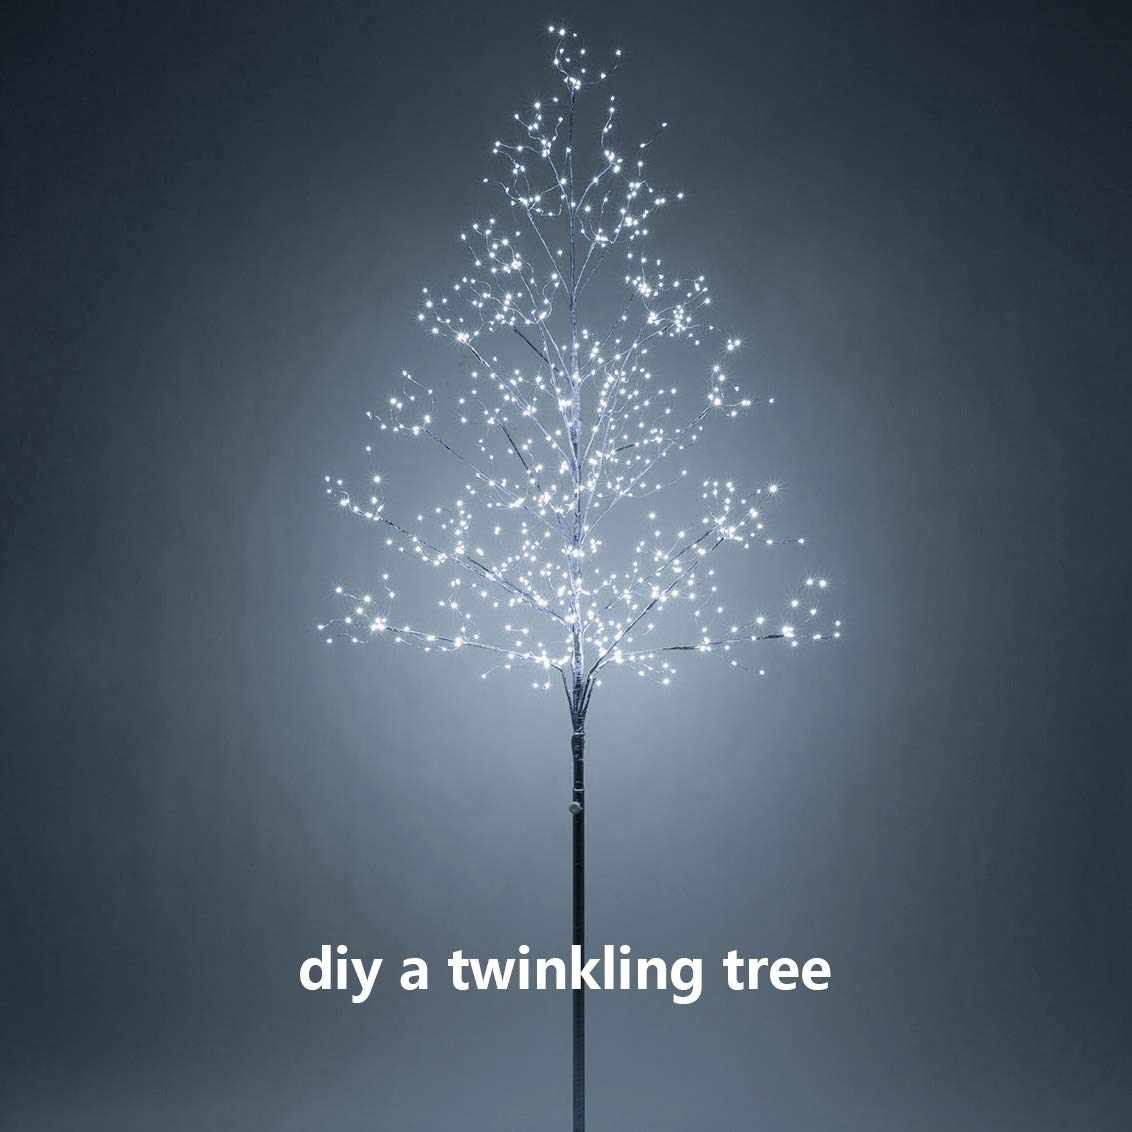 CocoSeclected Blue Twinkling Fairy Lights USB Powered,33ft 100 Micro LEDs String Twinkle Lights with Remote Teen Girls Bedroom Decor Kids Night Light .